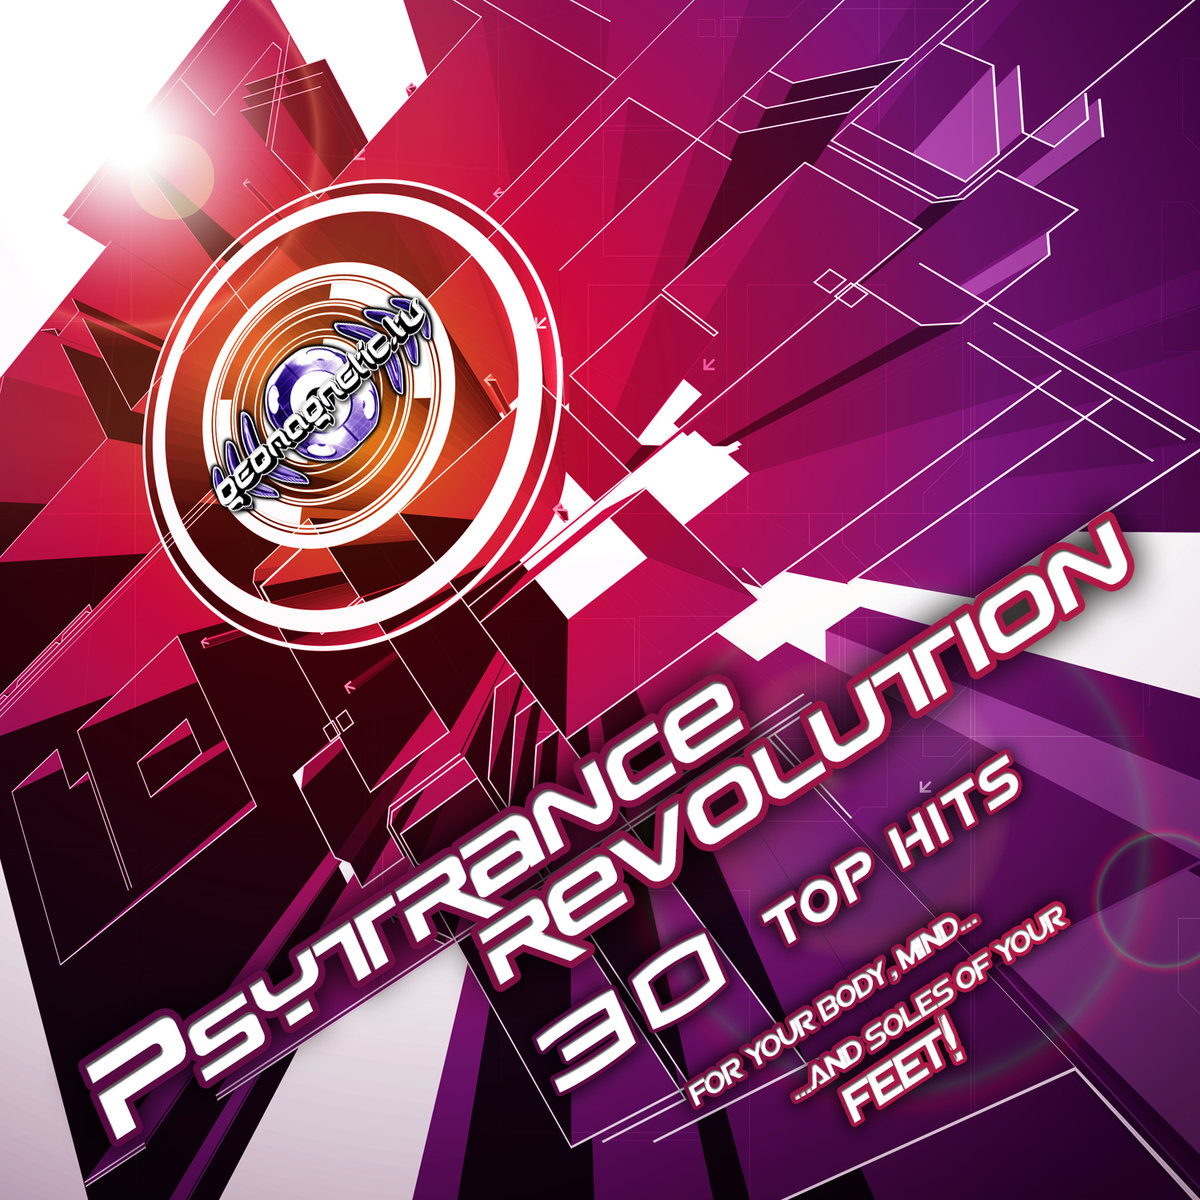 Terapeutica - More Time @ 'Various Artists - Psytrance Revolution (30 Top Hits)' album (electronic, goa)